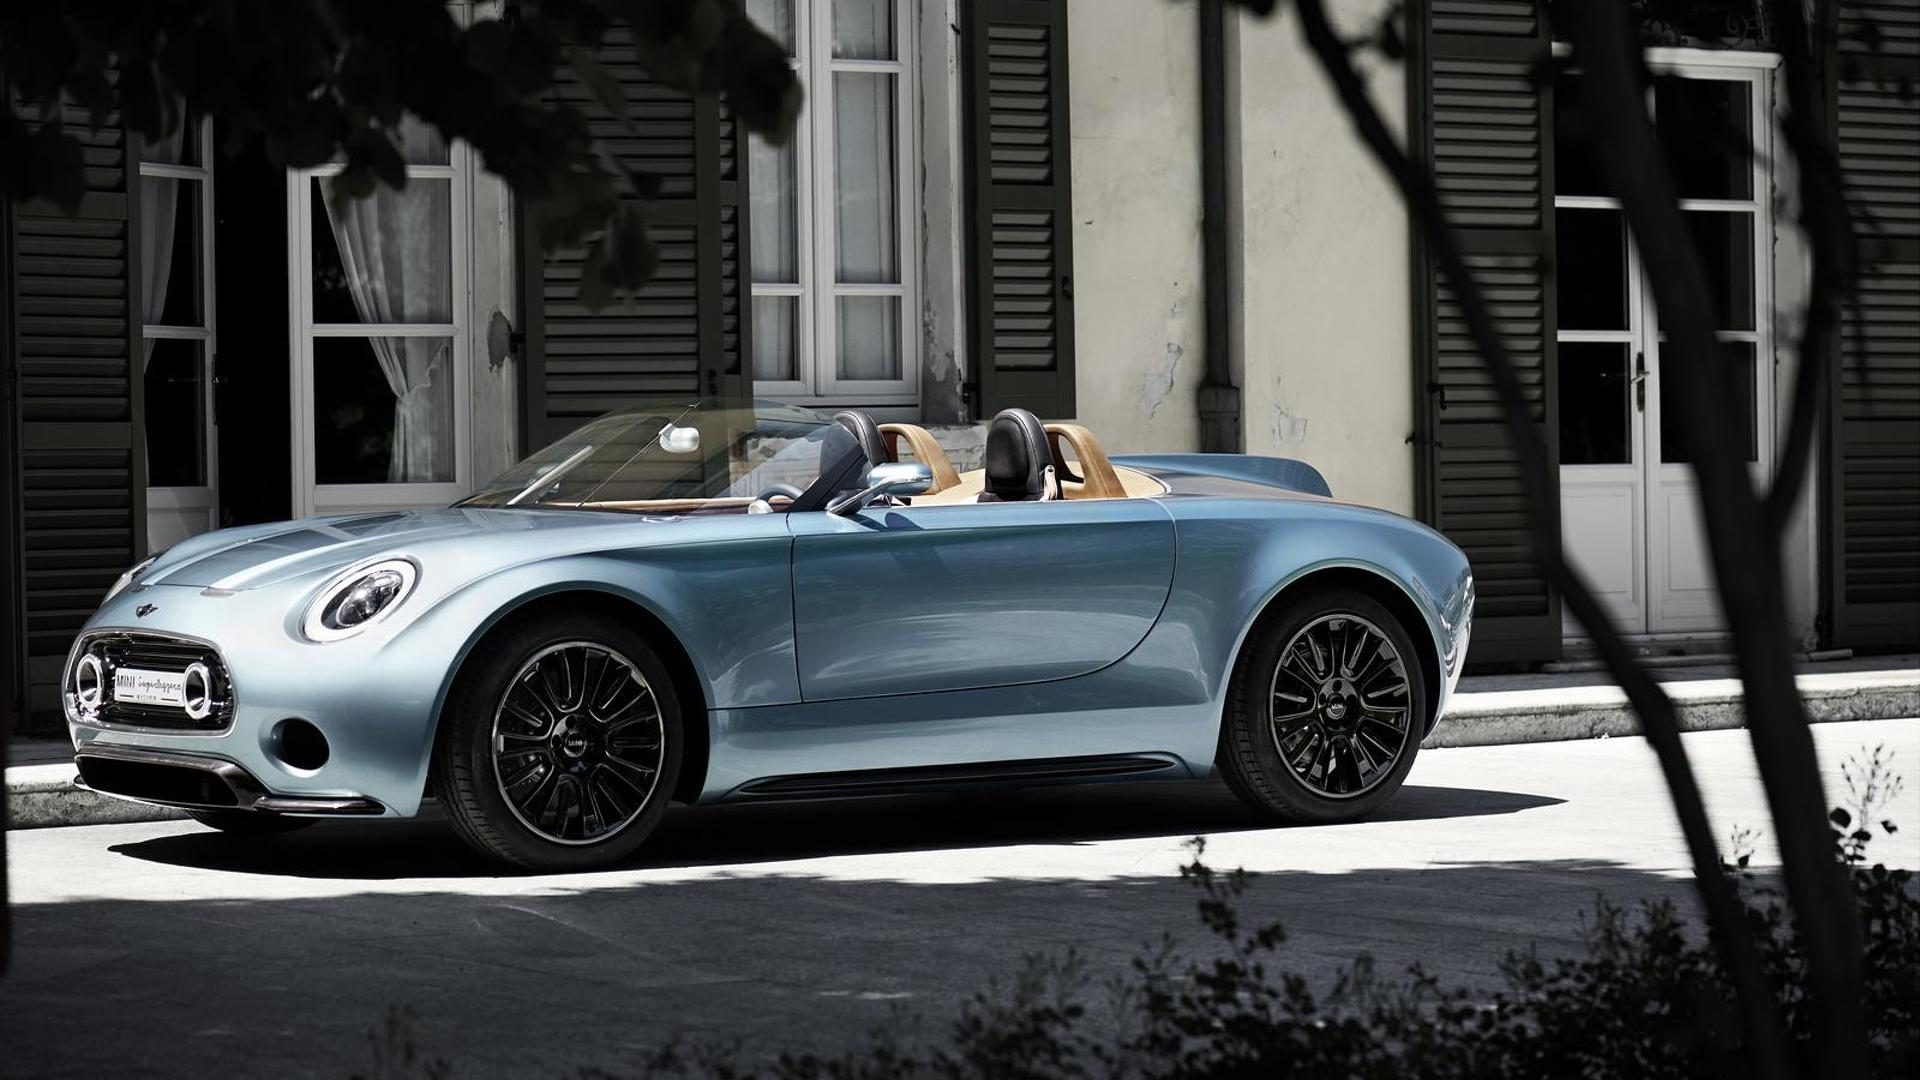 MINI Superleggera could see production, decision at least six months off